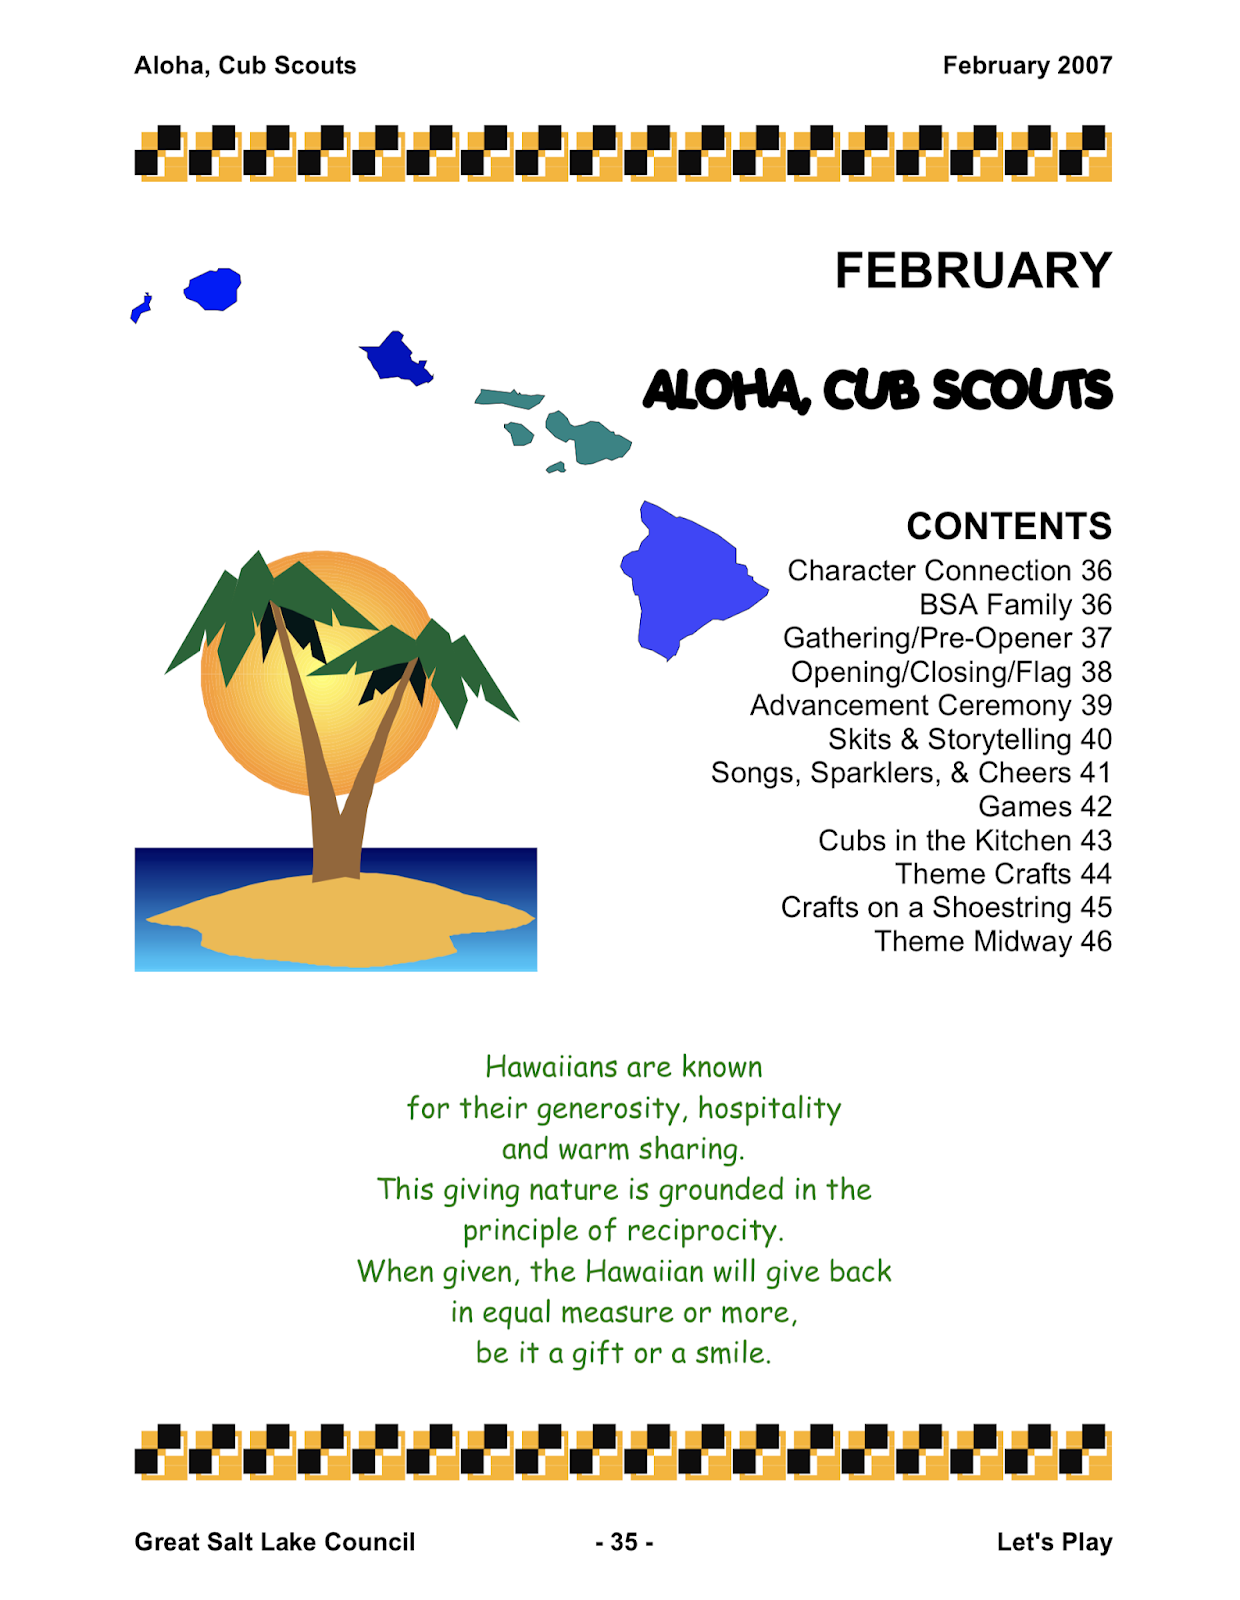 image relating to Cub Scout Flag Ceremony Printable identify Akelas Council Cub Scout Chief Working out: Aloha Cub Scouts